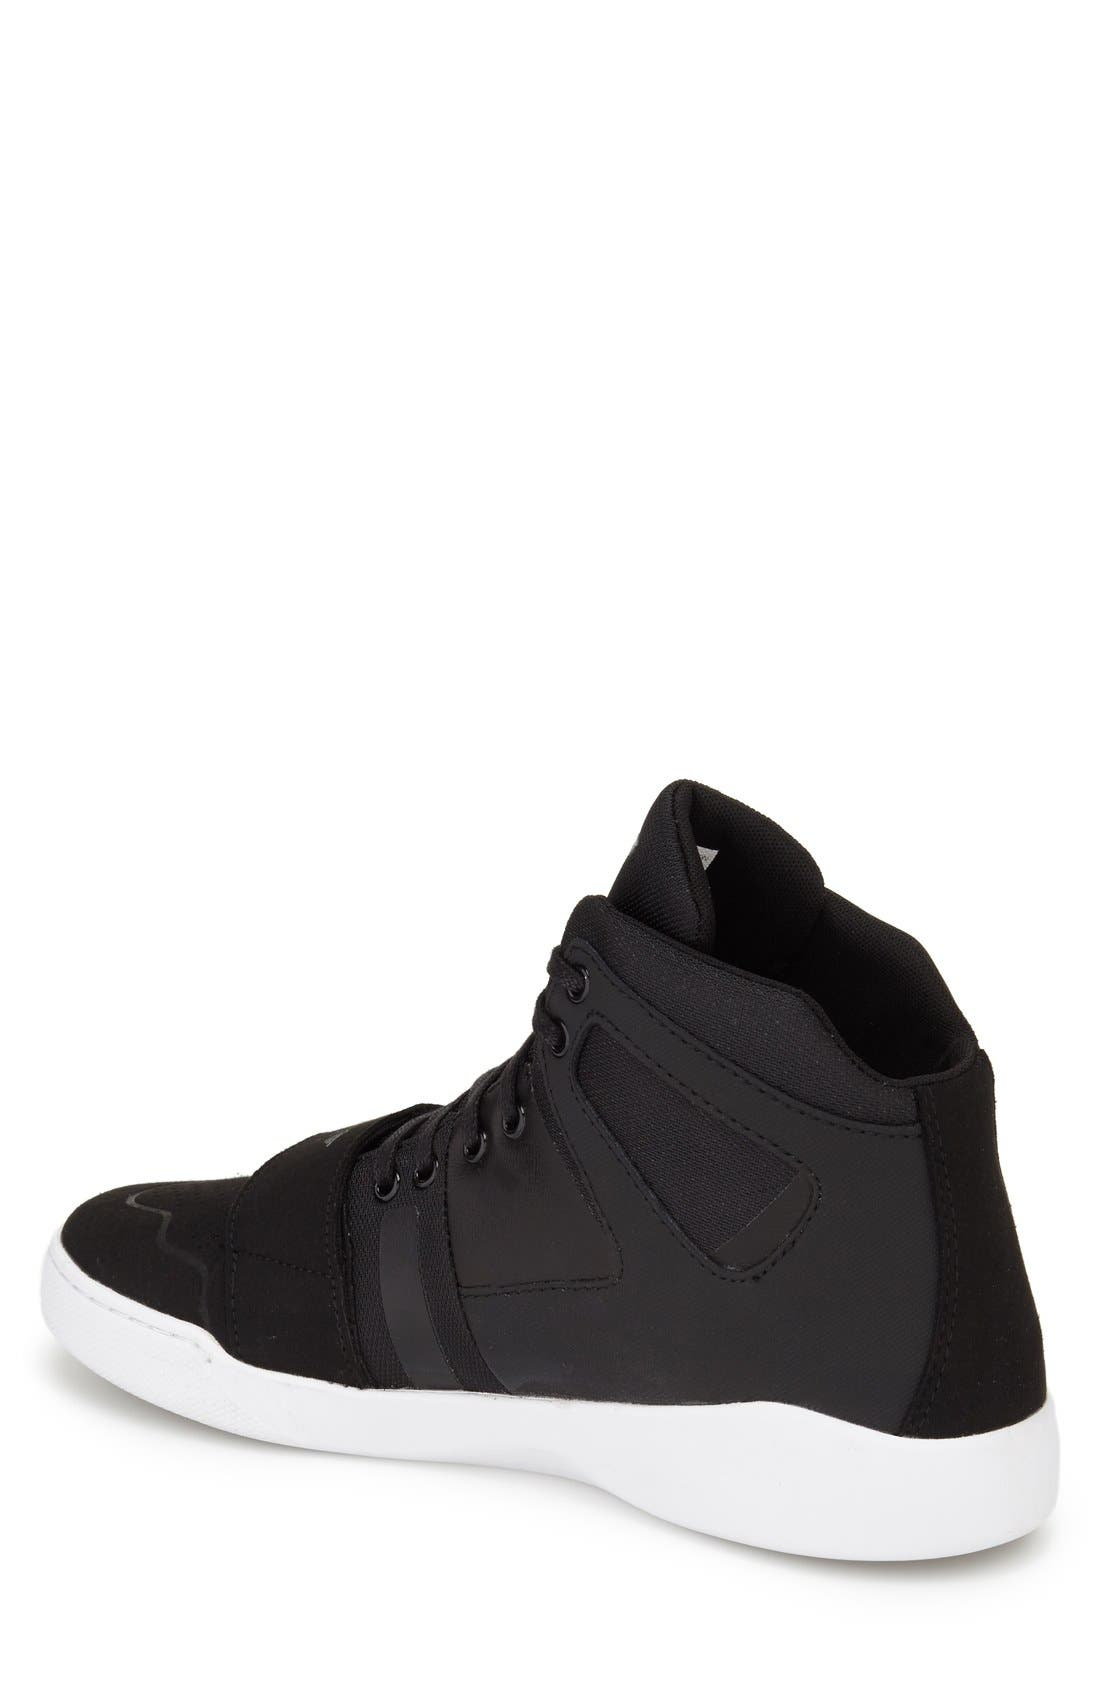 'Manzo' Sneaker,                             Alternate thumbnail 2, color,                             Black Leather